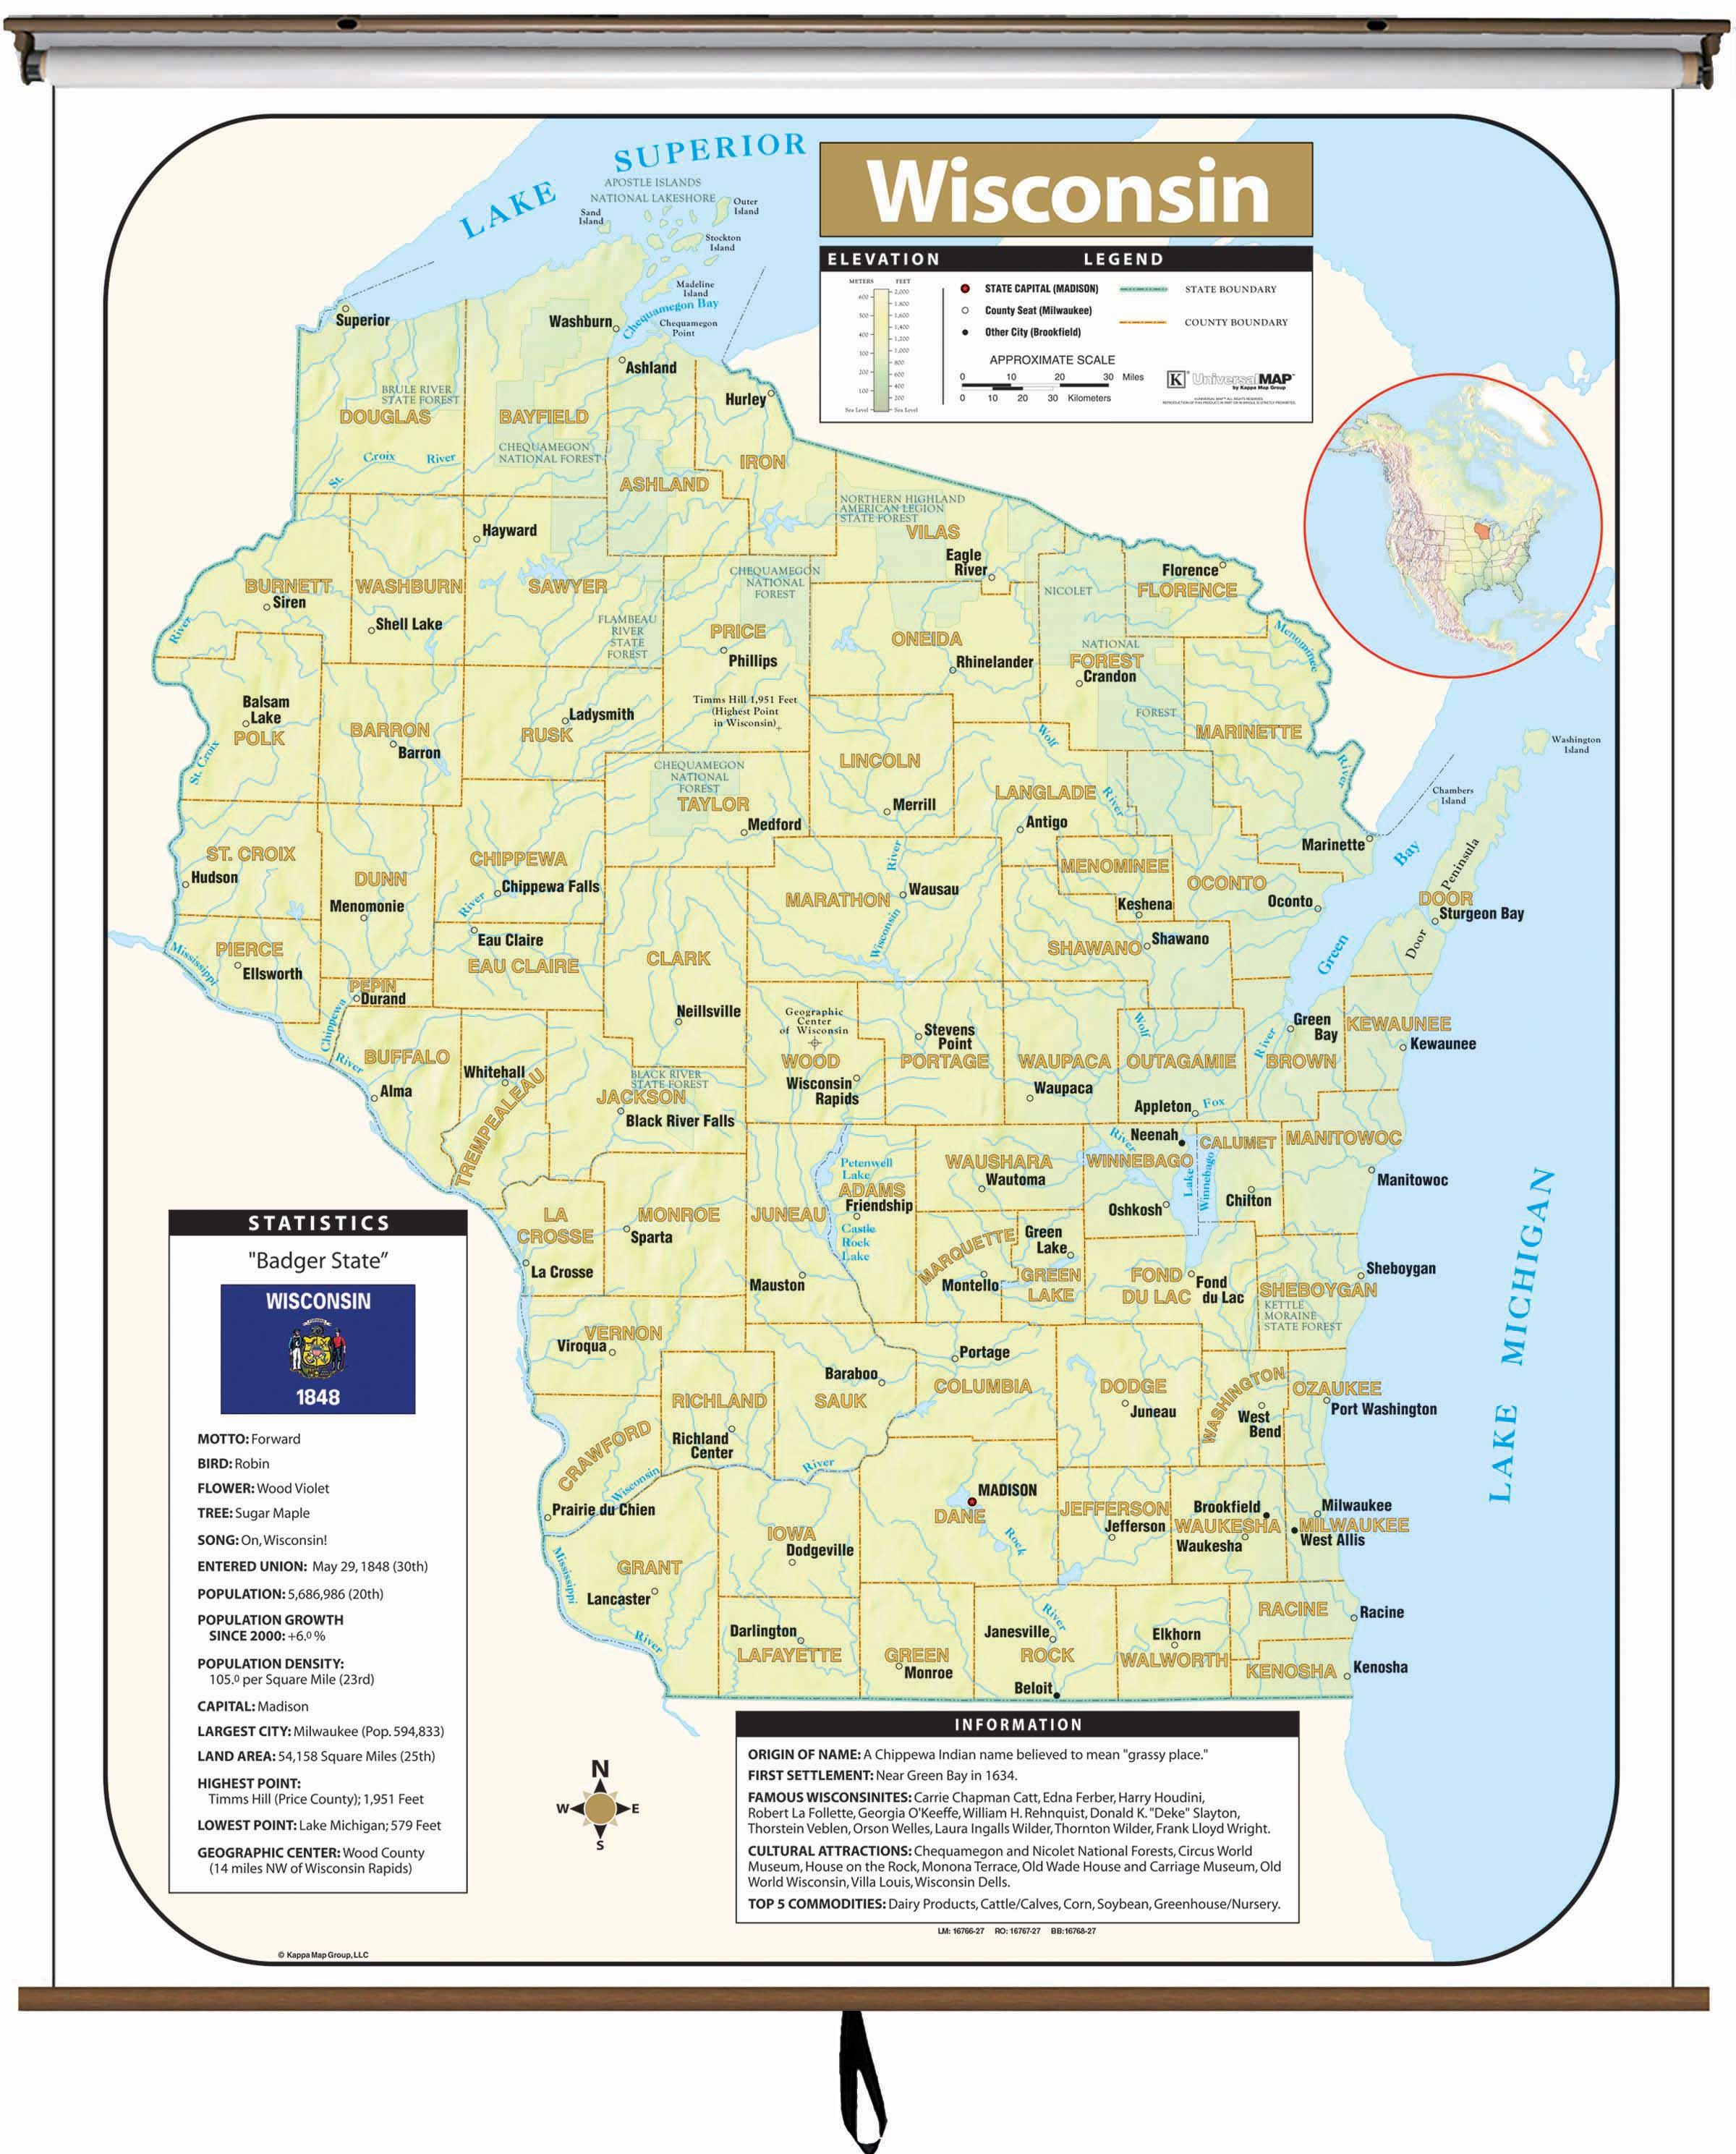 Wisconsin Large Scale Shaded Relief Wall Map On Roller With - Large scale world map